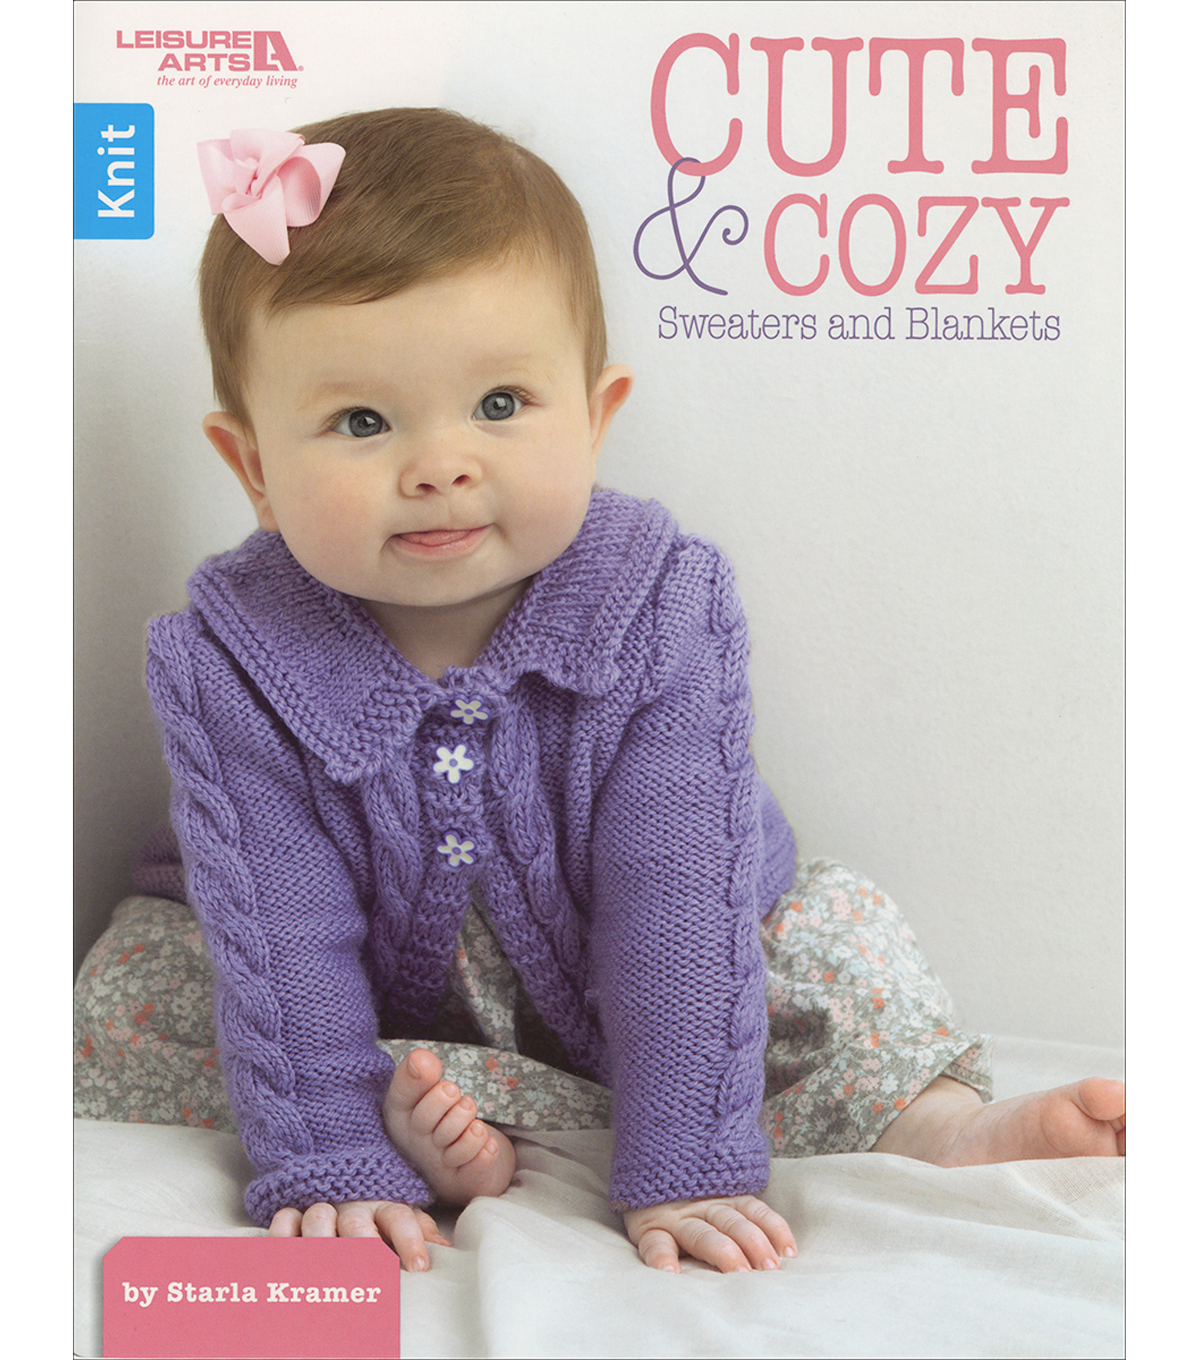 Leisure Arts Cute & Cozy Sweaters & Blankets Knitting Book